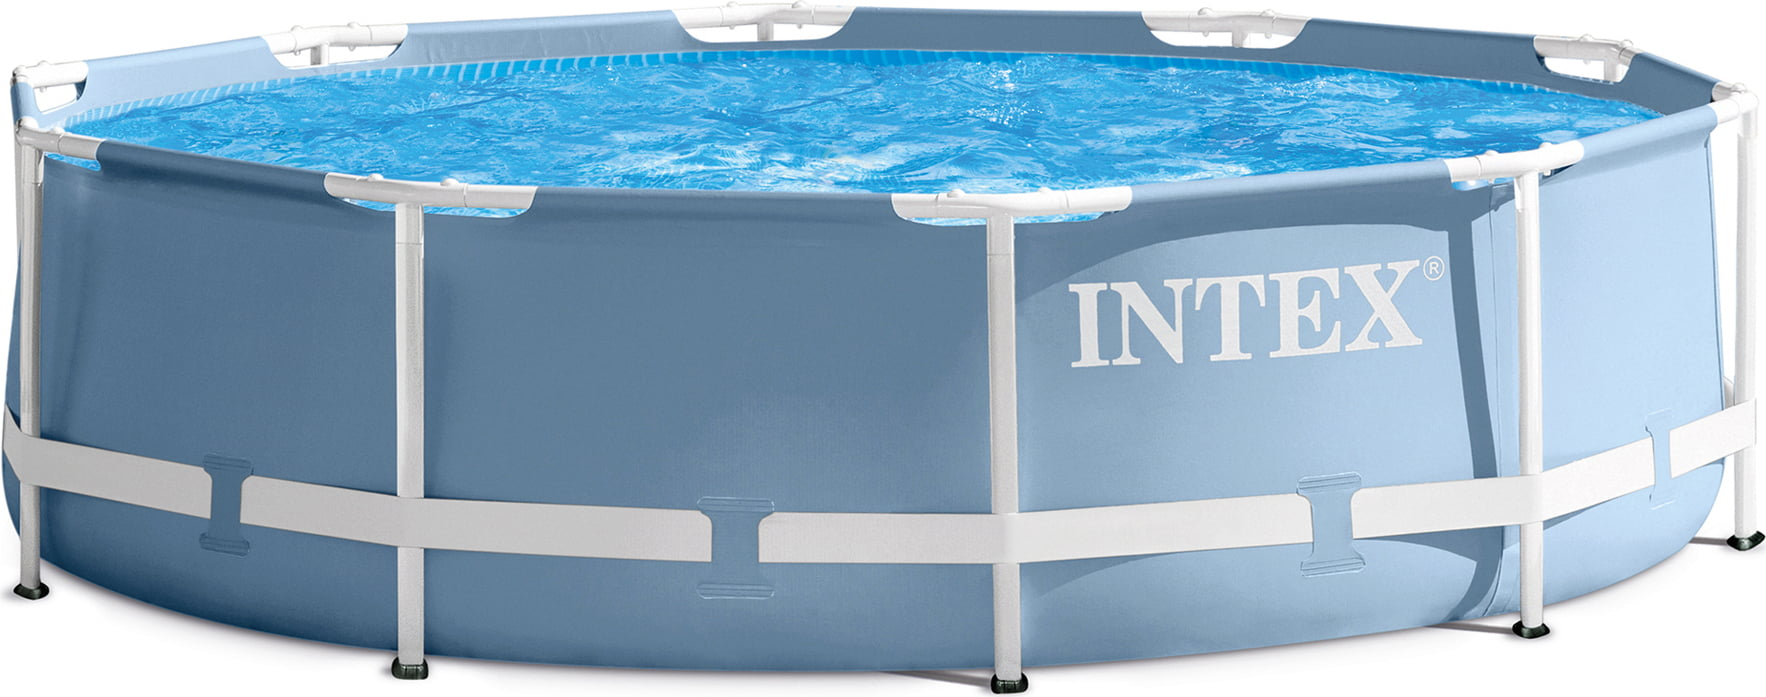 Intex Pool Abdeckplane Hält Nicht Intex Frame Pool Rondo Prism Ø 457 X 84 Cm